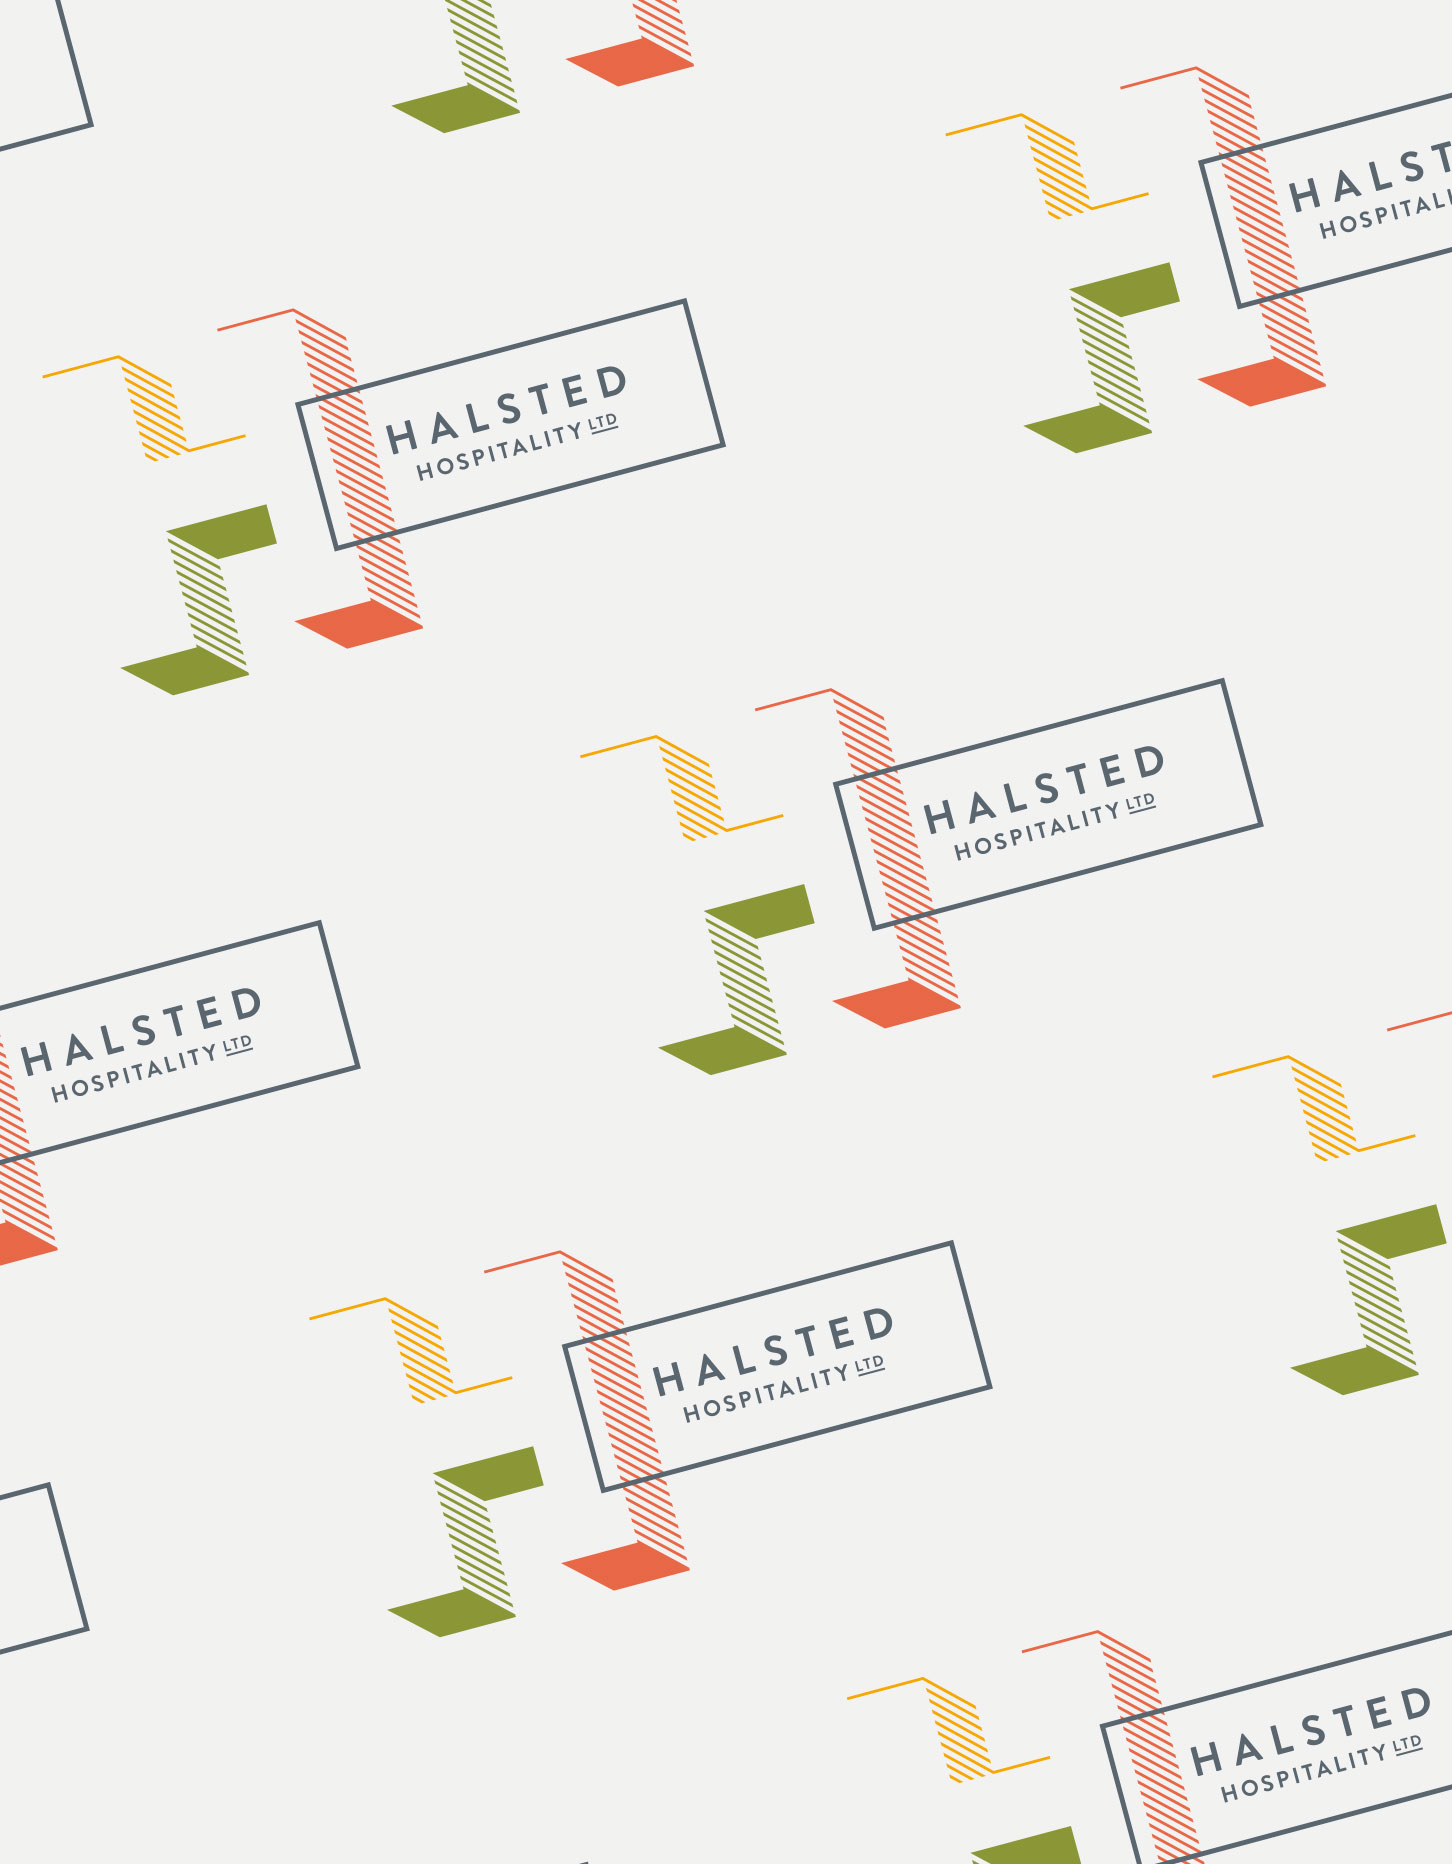 Chad Roberts Design Ltd. Halsted Hospitality Brand Identity Design